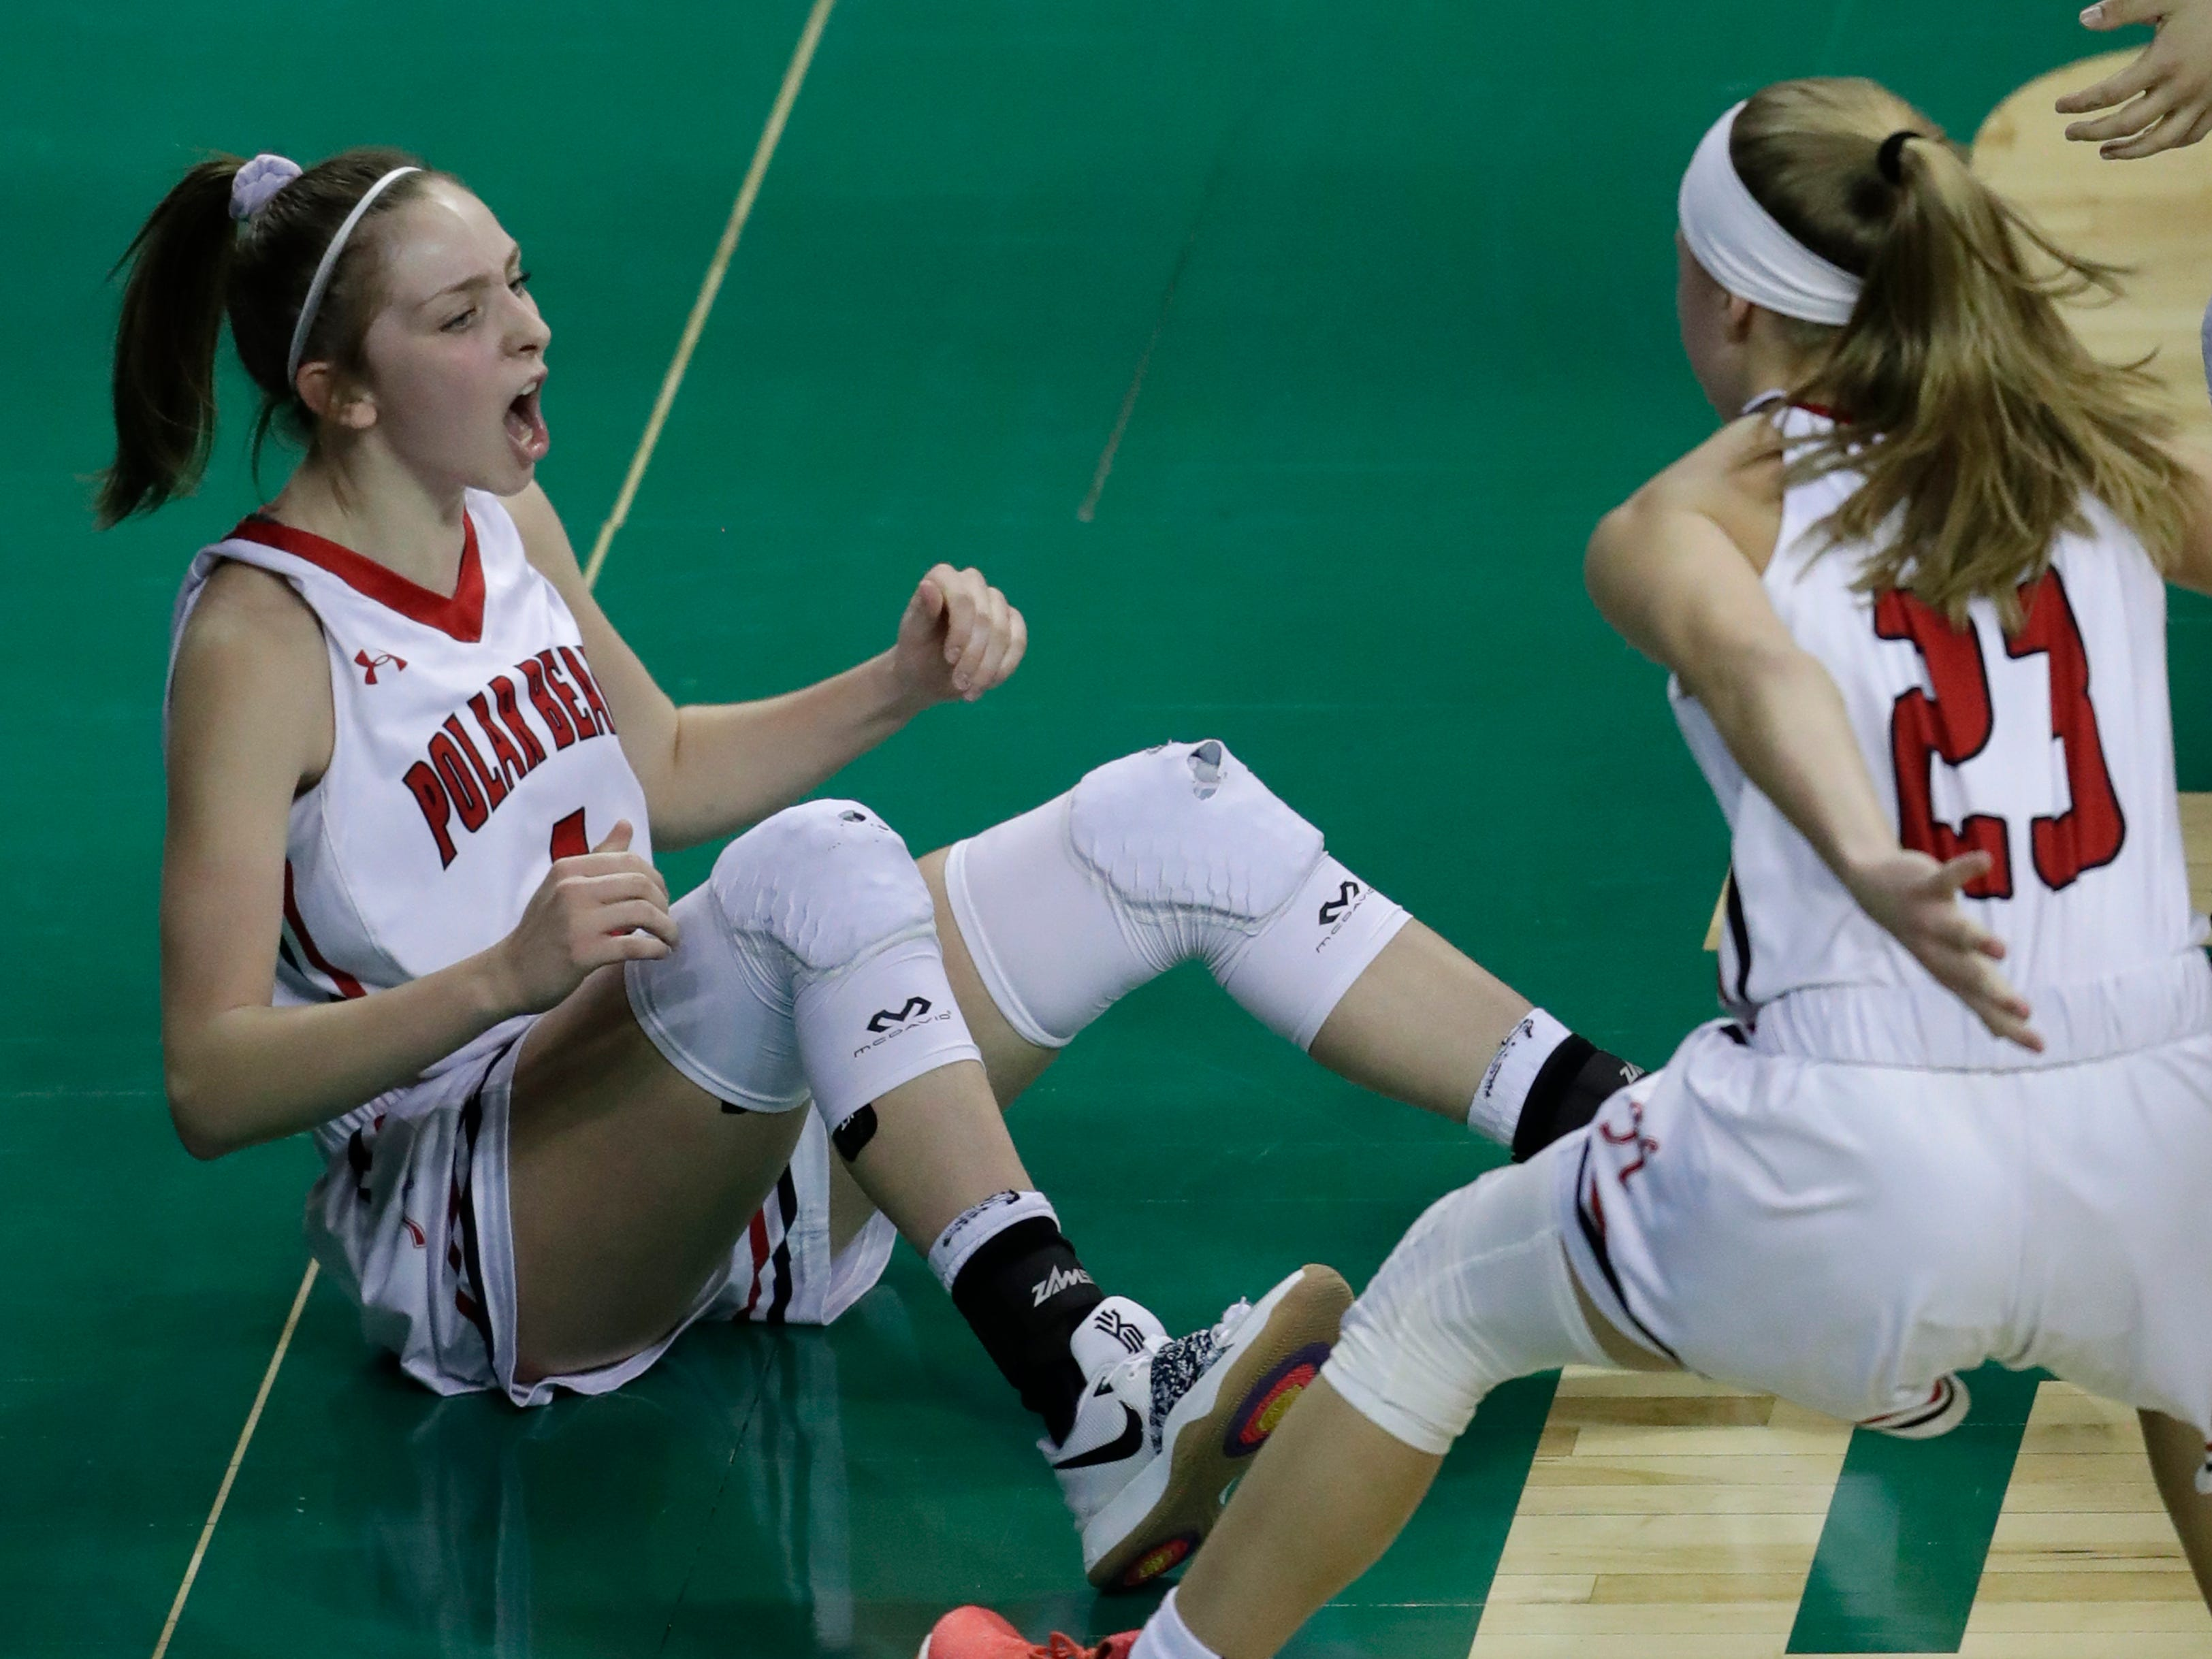 Hortonville's Lexi Day (4) celebrates scoring and getting fouled on the play with Kammy Peppler (23) against Beaver Dam during their Division 2 semifinal game at the WIAA girls state basketball tournament Friday, March 8, 2019, at the Resch Center in Ashwaubenon, Wis. Dan Powers/USA TODAY NETWORK-Wisconsin